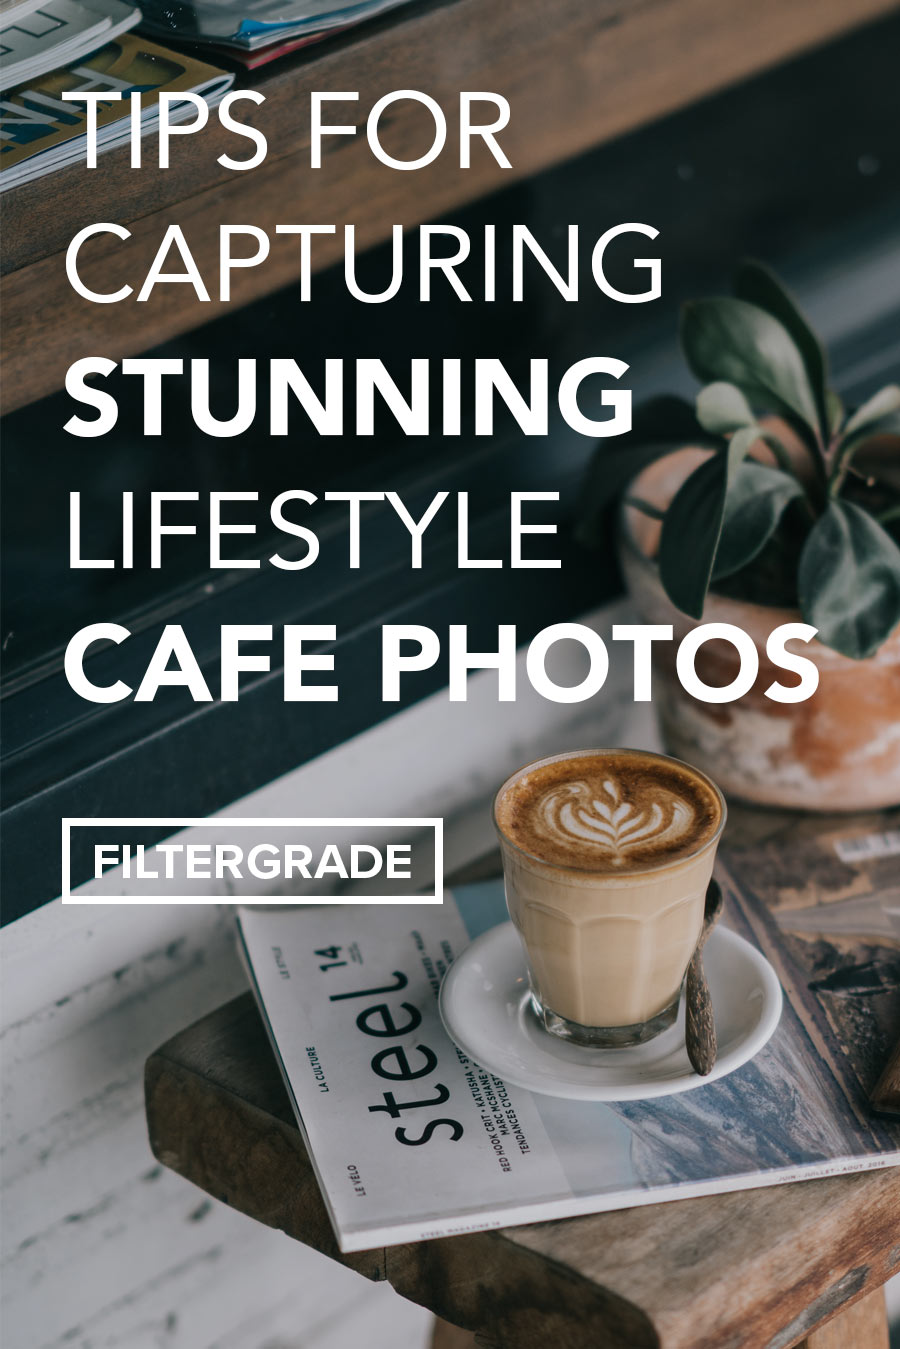 Tips for capturing stunning lifestyle cafe photos at your local coffee shop.